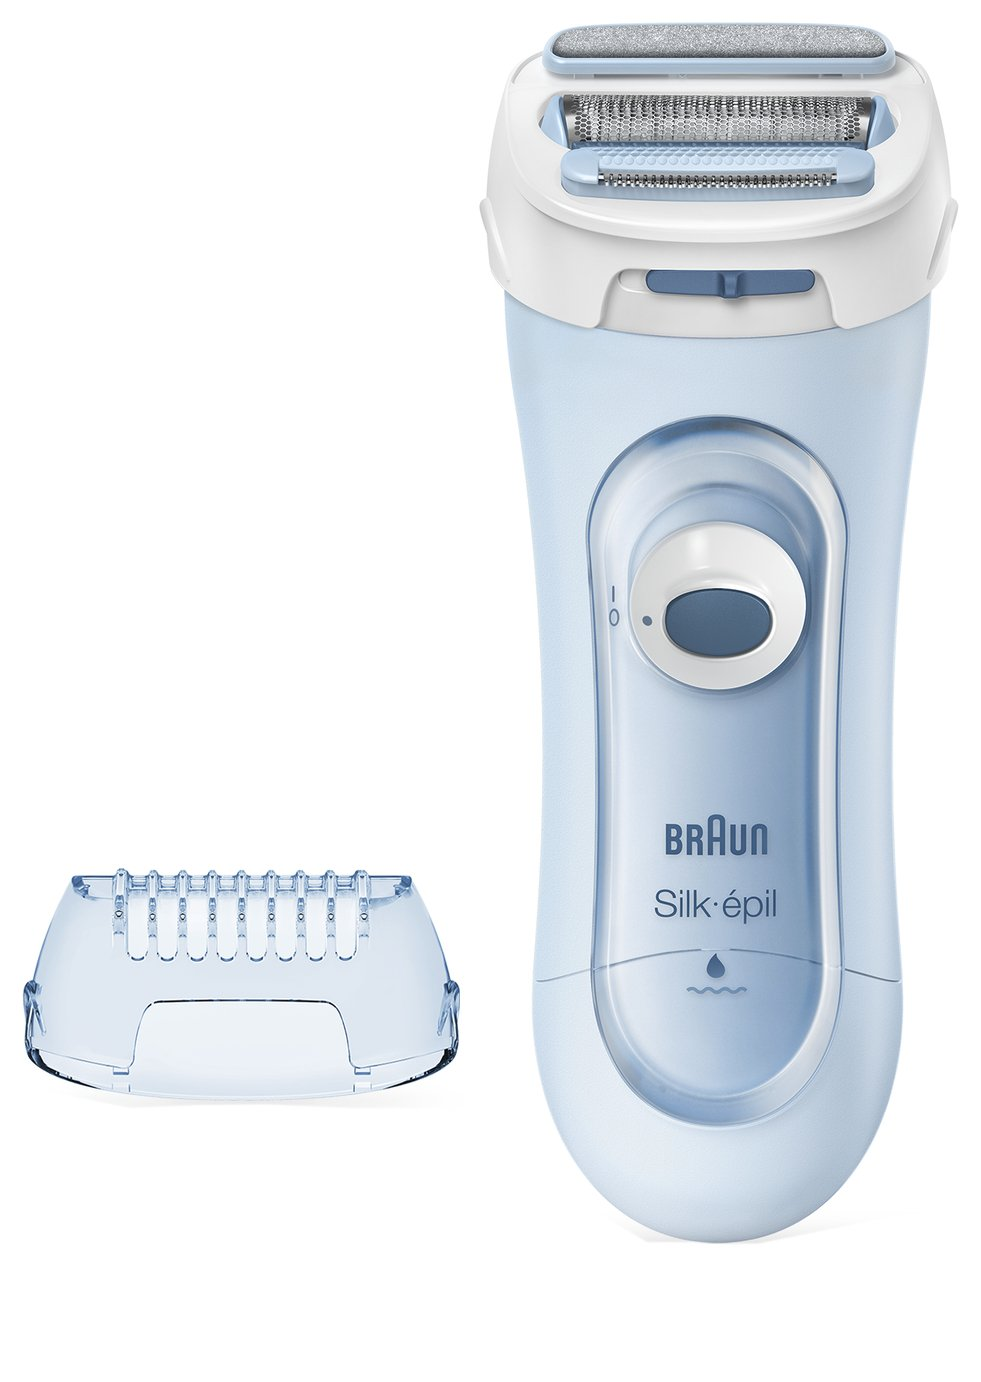 Braun Silk-epil Wet and Dry Cordless Lady Shaver